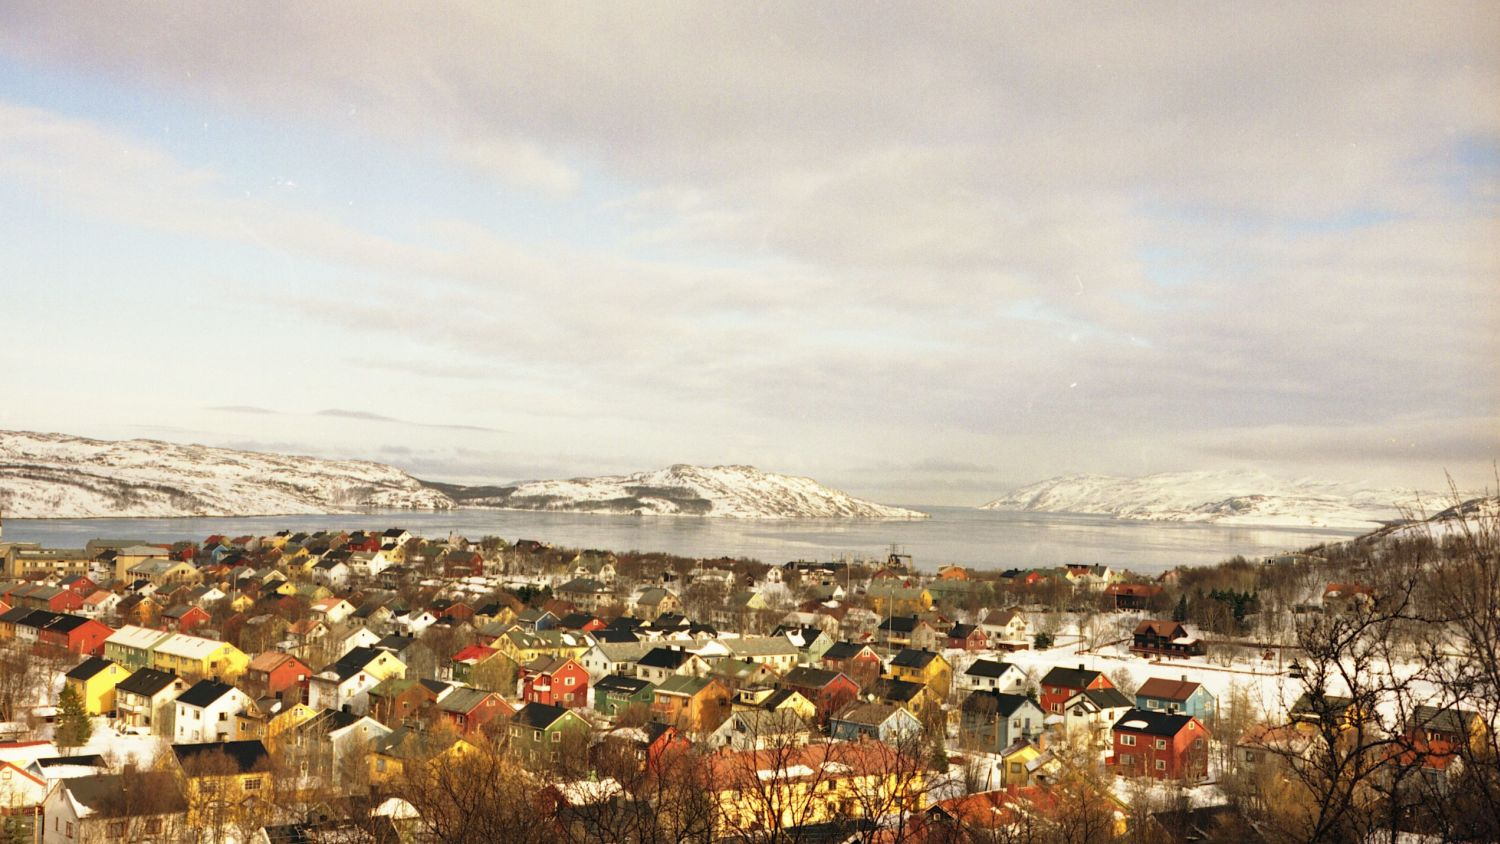 Kirkenes with snow in warm light. Photo: Jørn Tomter, nordnorge.com